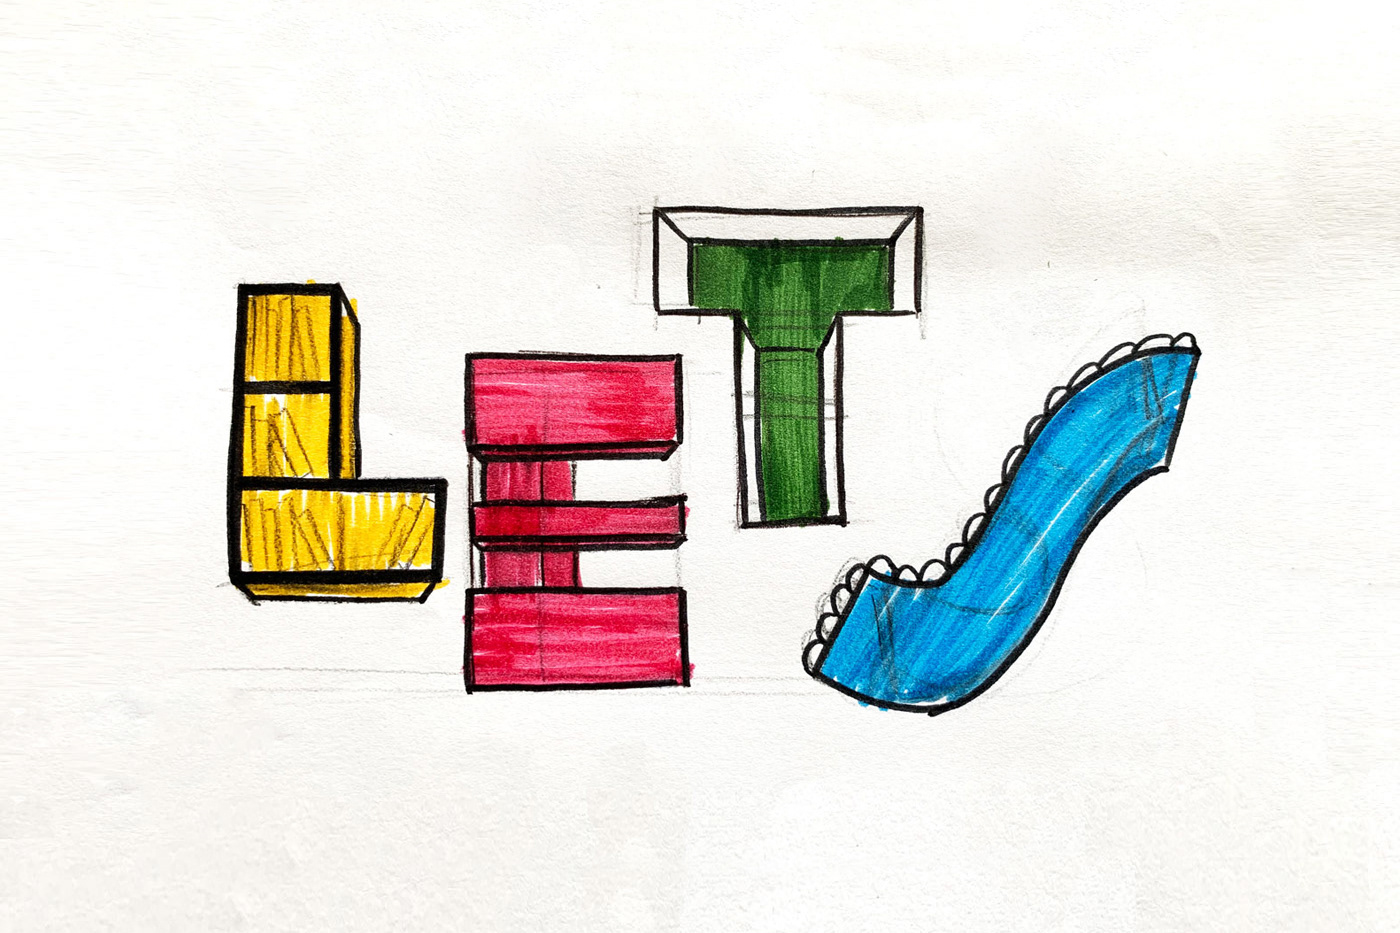 Mixing Typography & Architecture to create LET'S Makerspace